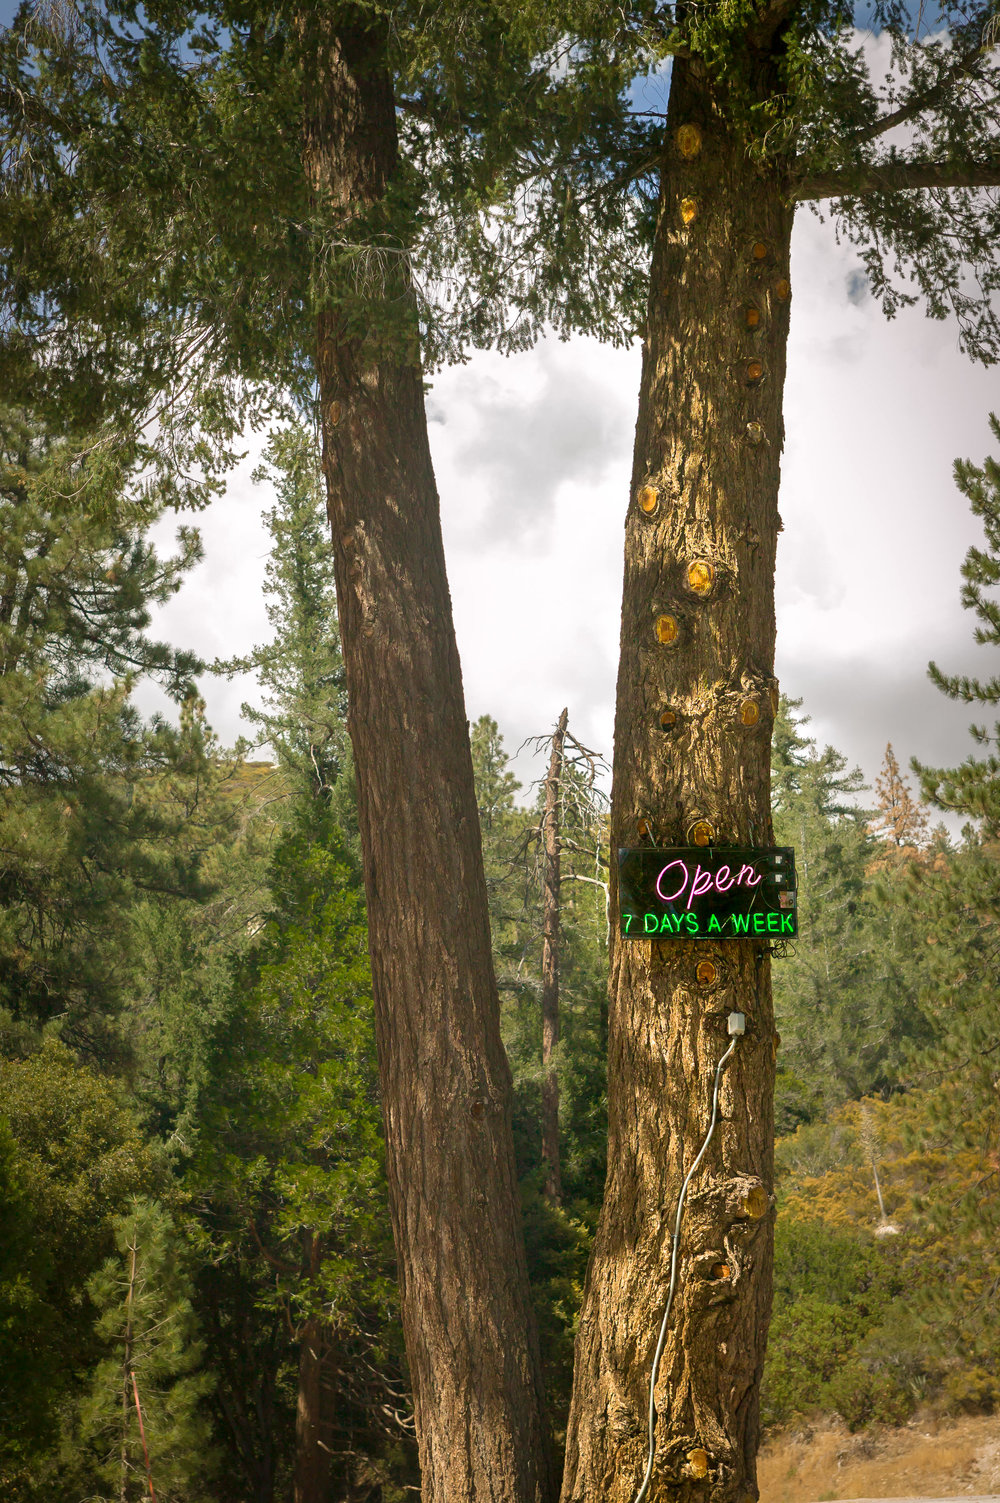 Open 7 Days a Week.  2003, Angeles Forest, California,Digital Image. Signed Limited Edition of 20   ORDER OR INQUIRE